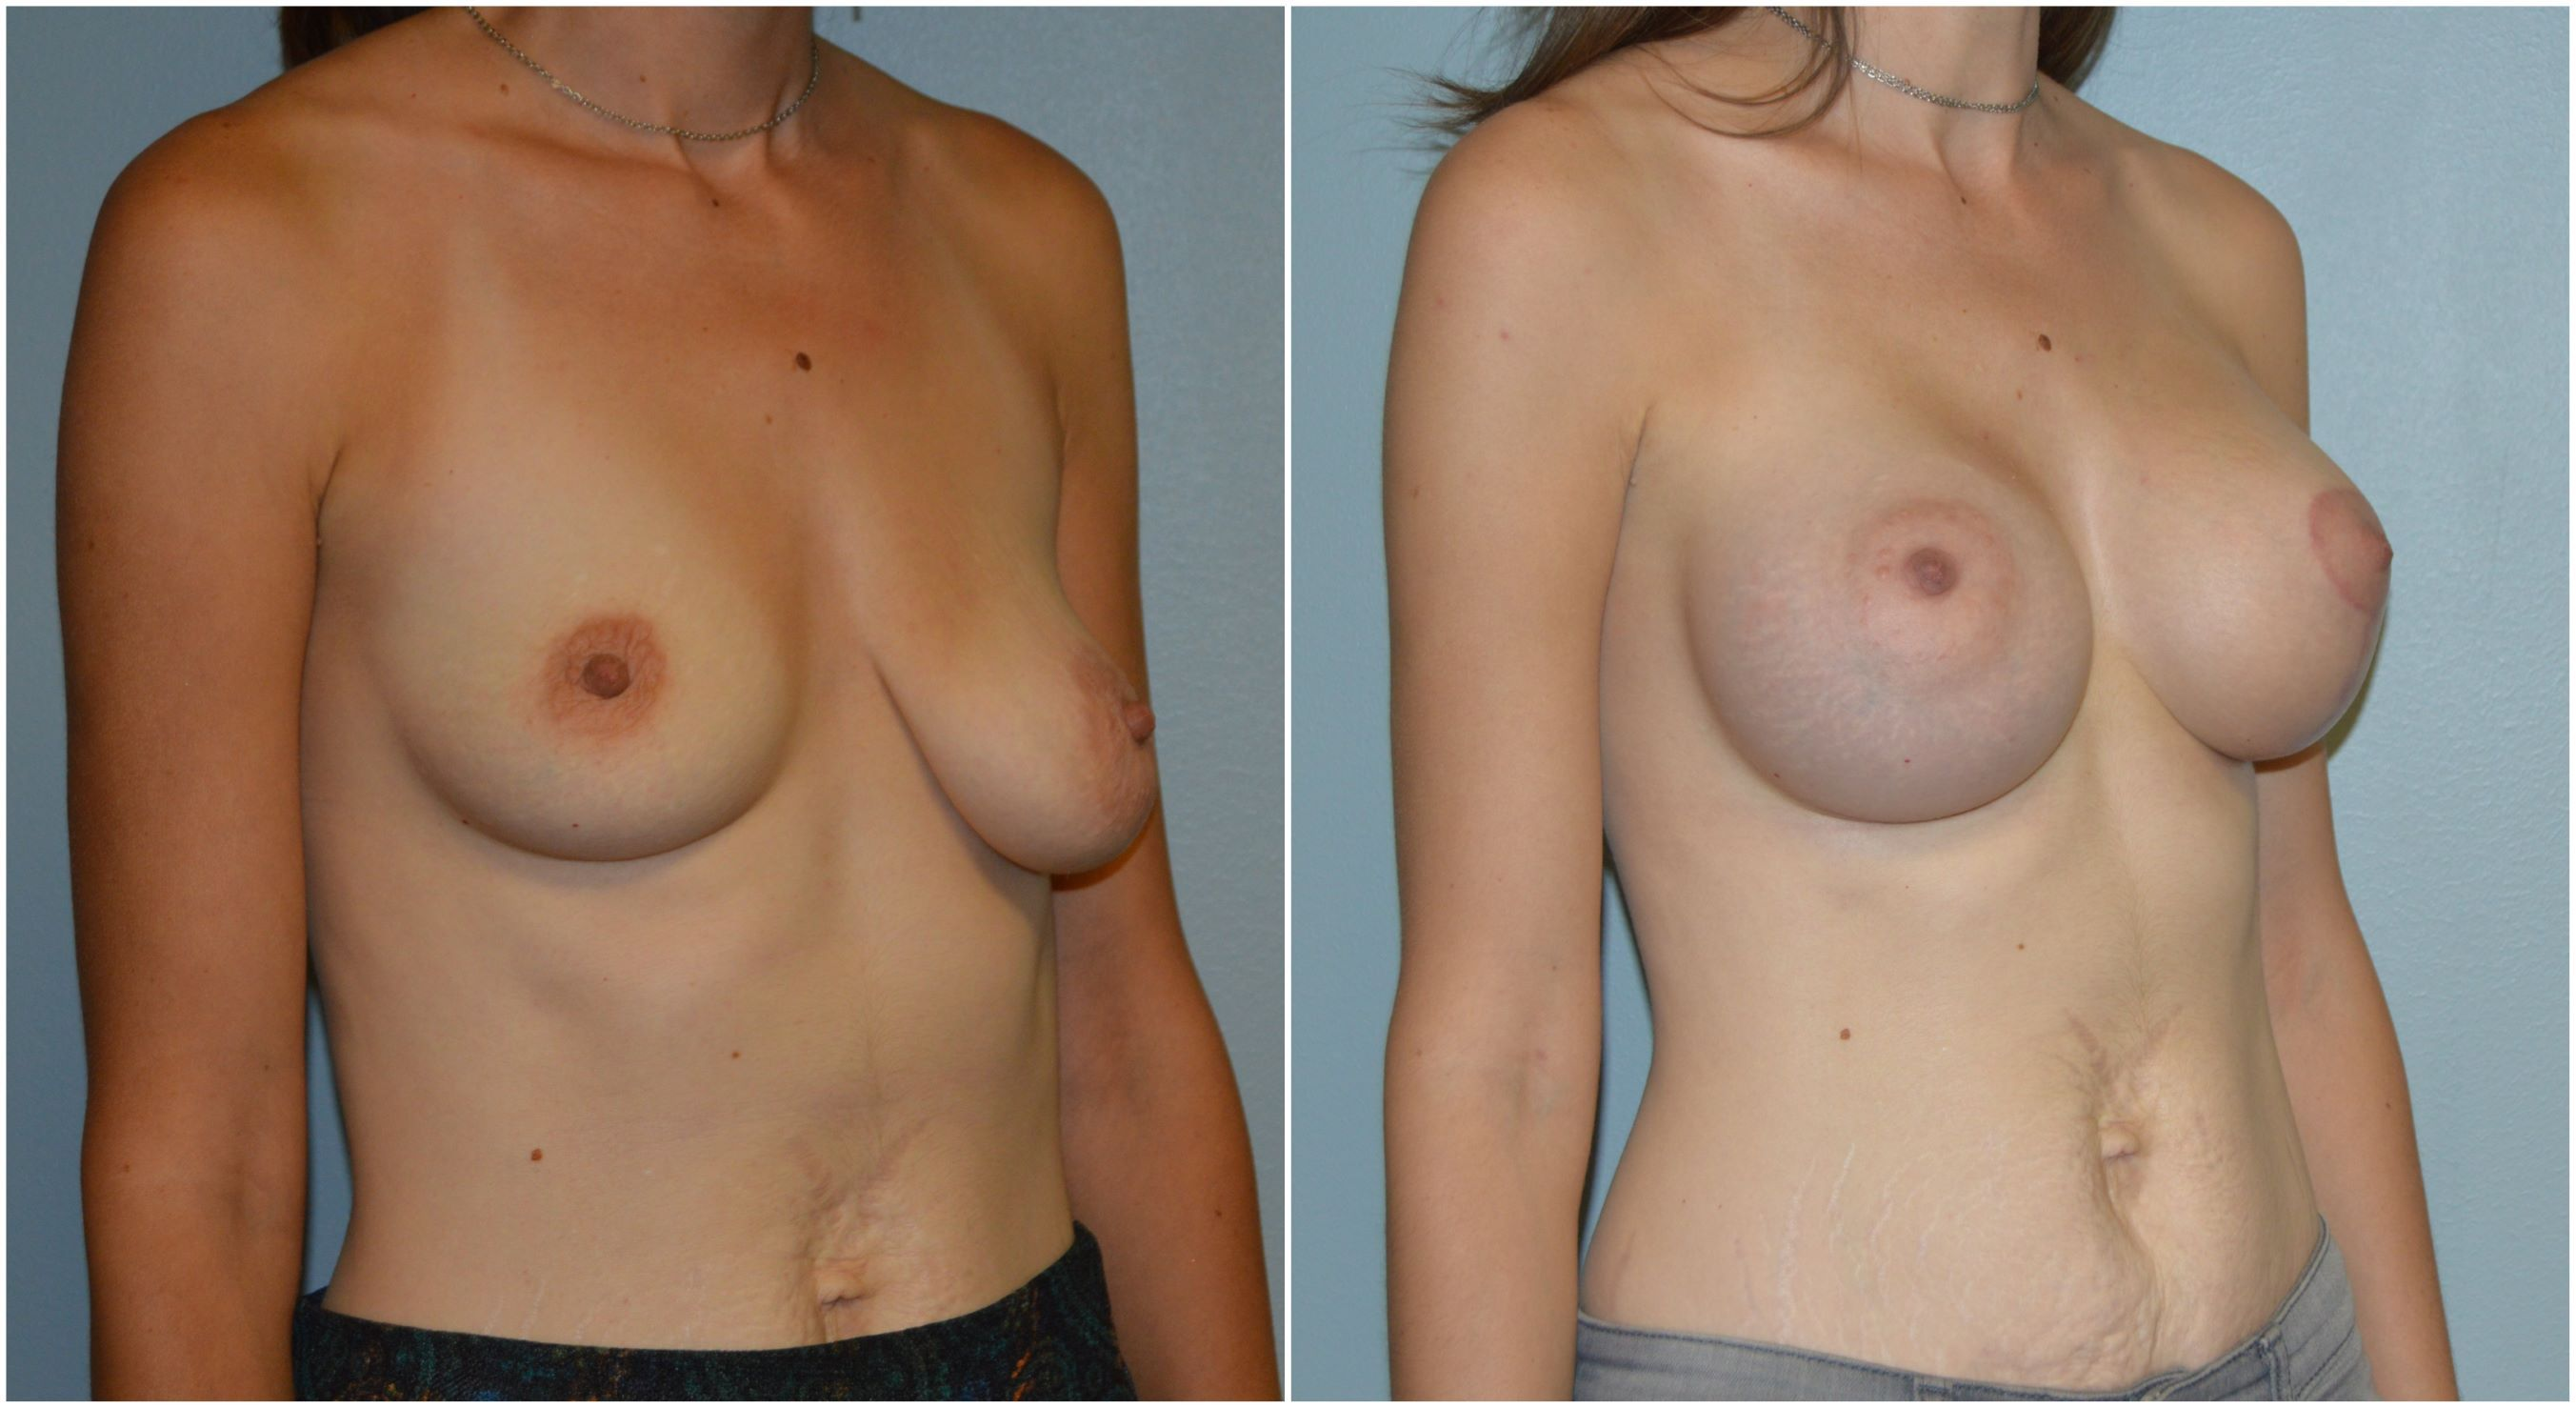 Augmentation Mammoplasty Before & After 1